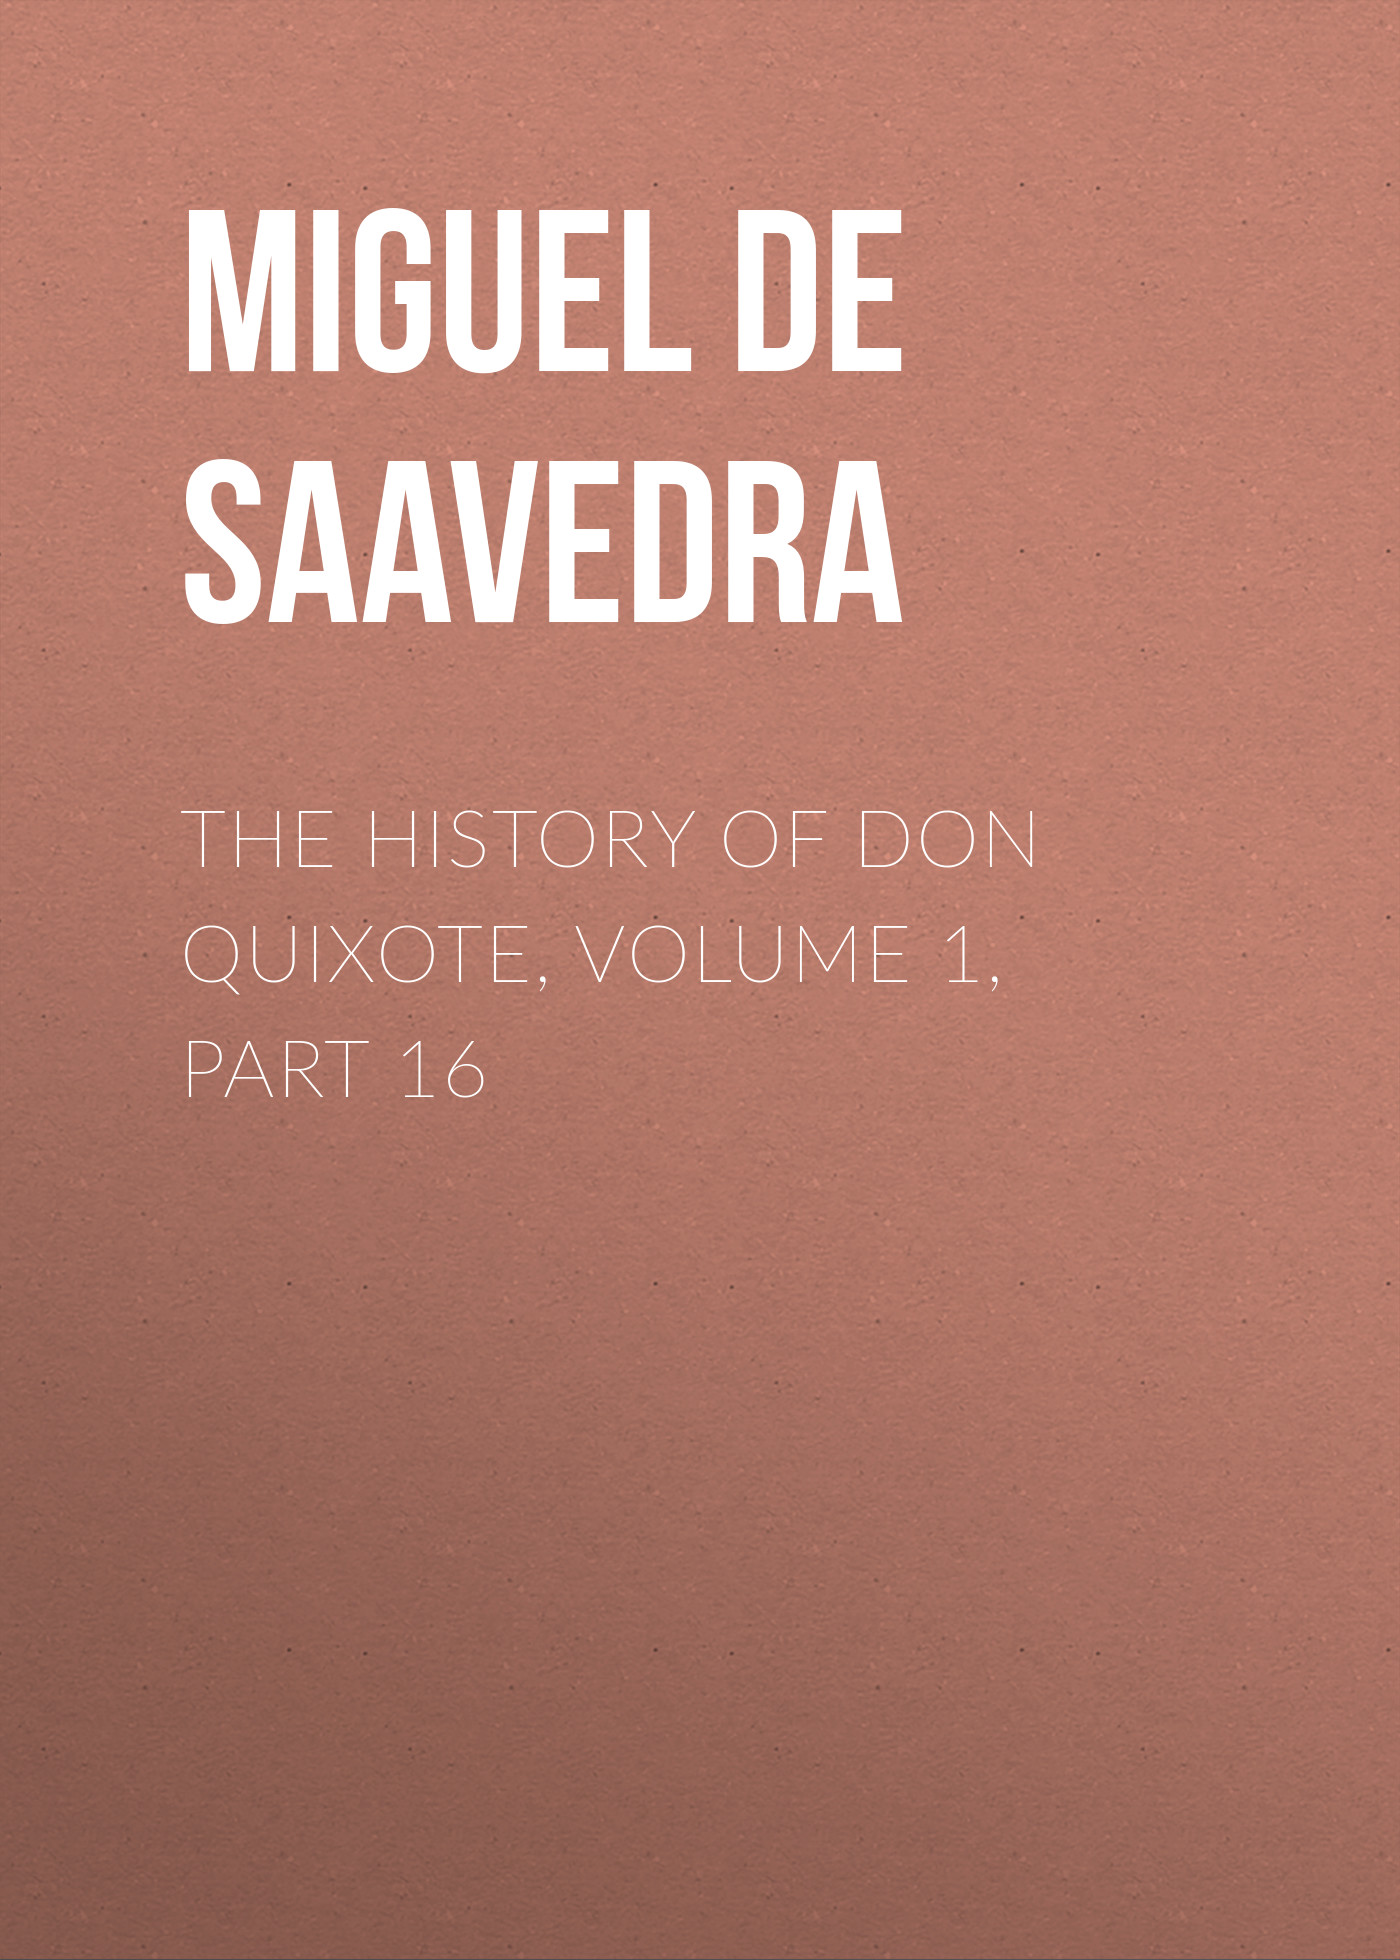 the history of don quixote volume 1 part 16